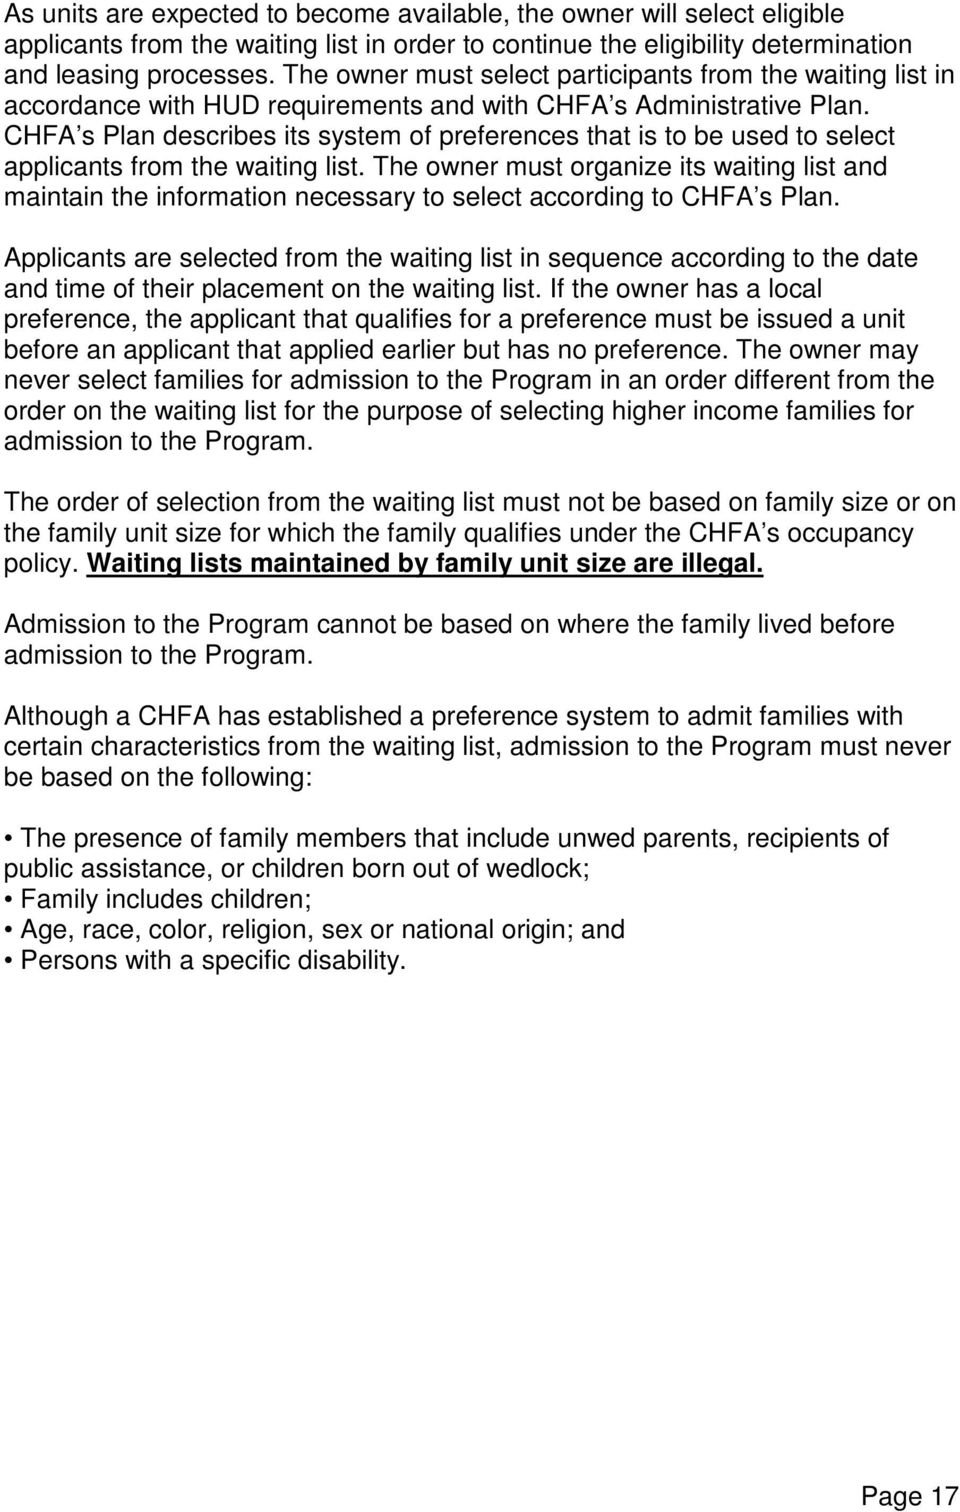 CHFA s Plan describes its system of preferences that is to be used to select applicants from the waiting list.